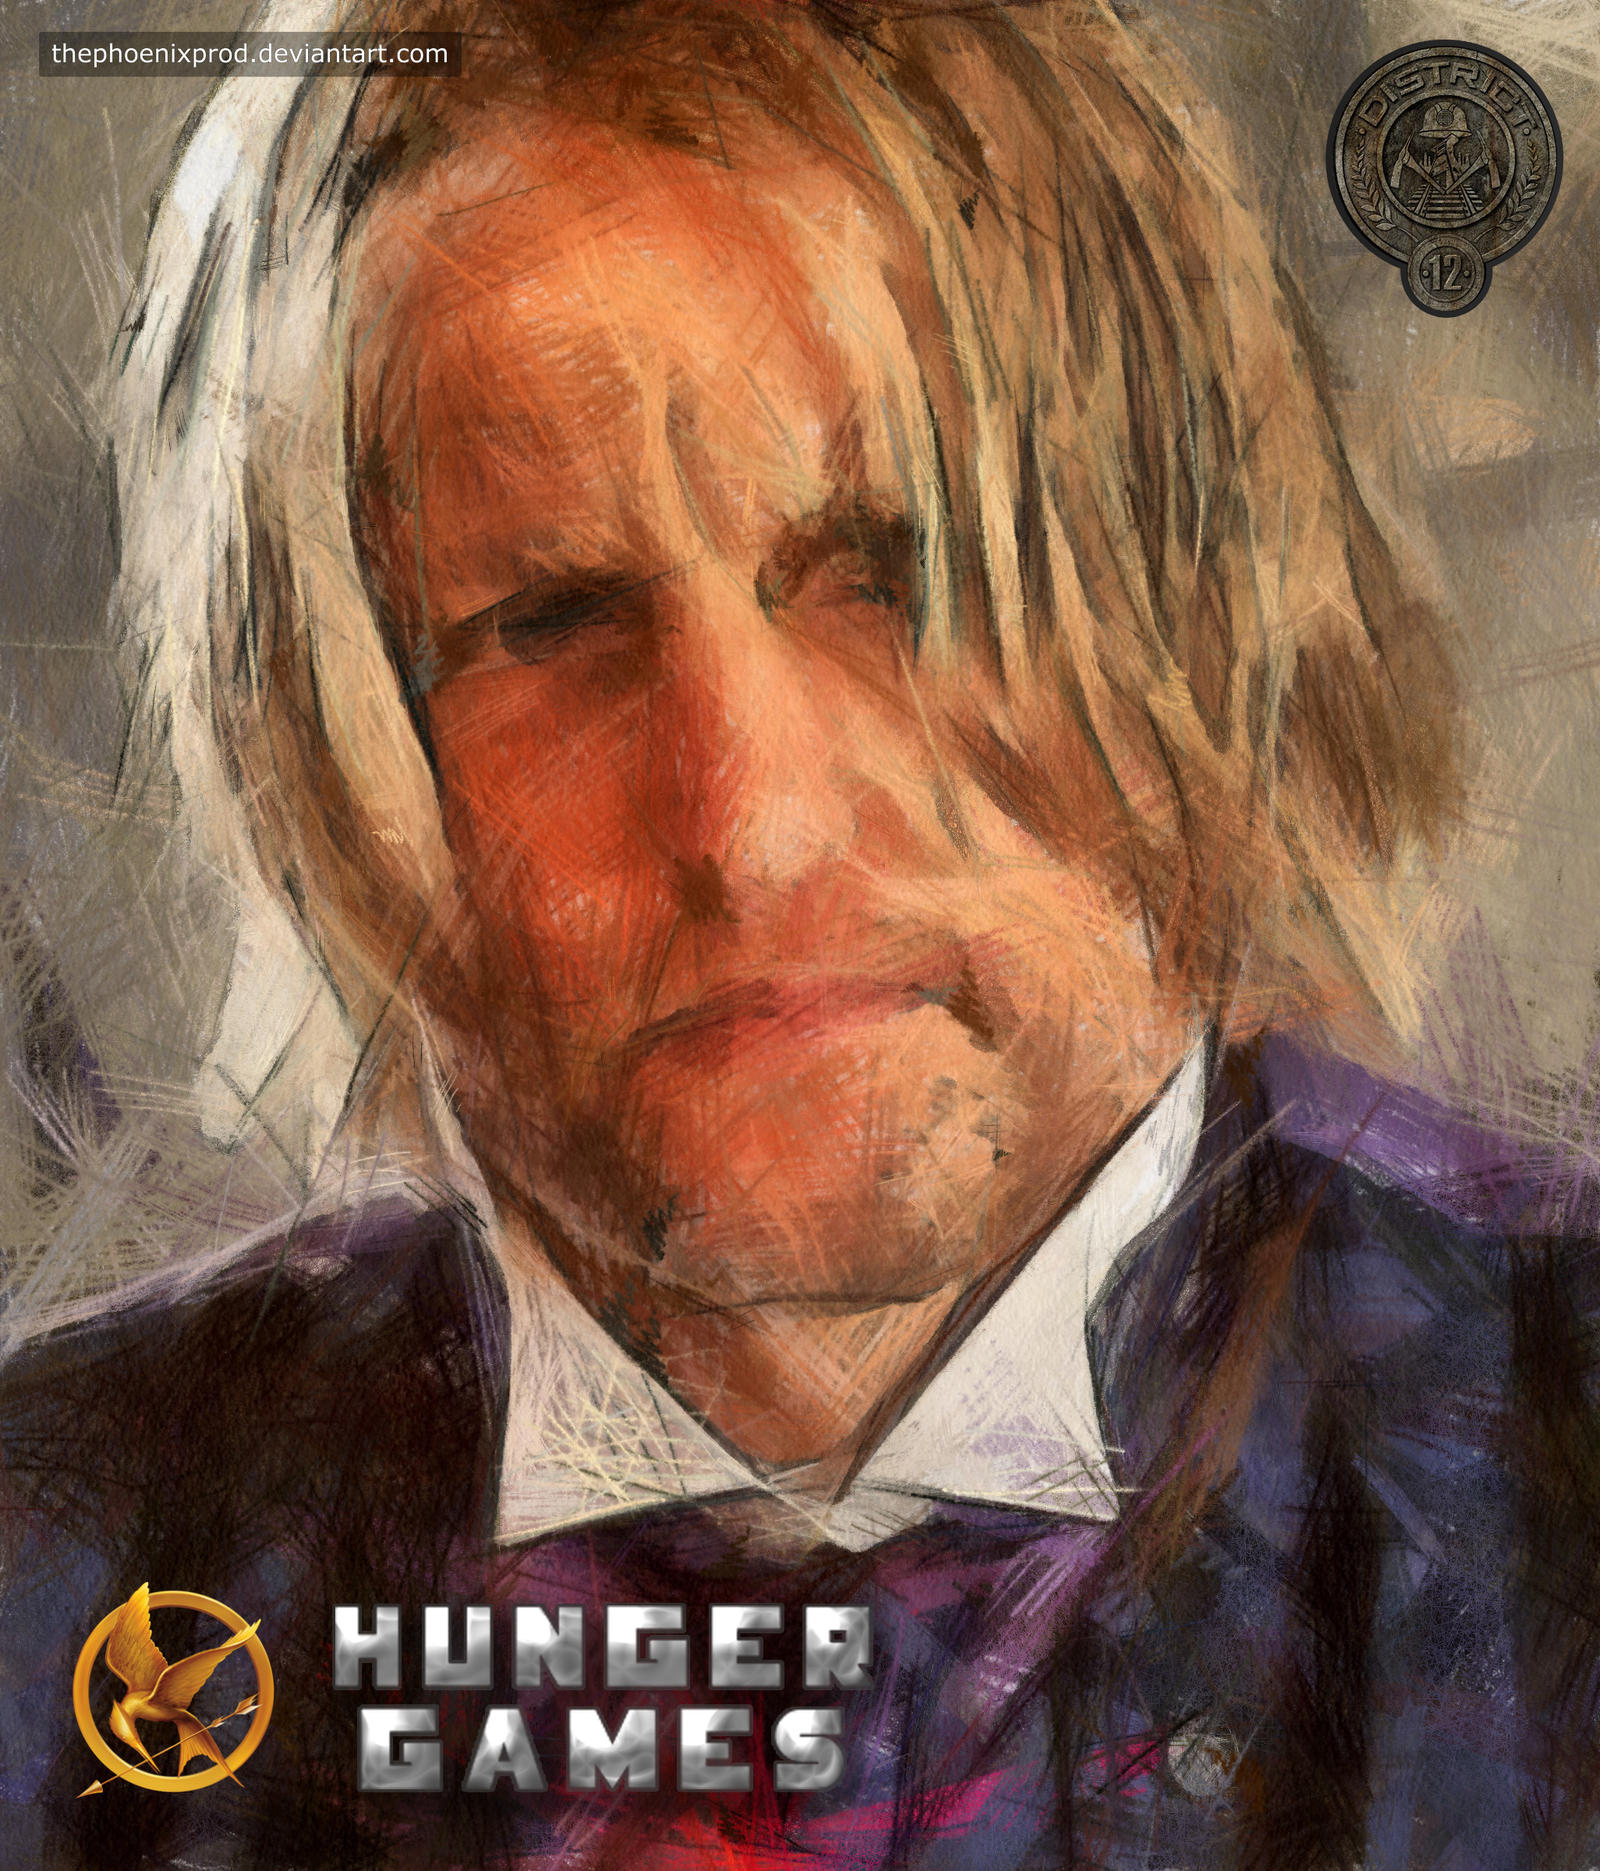 The Hunger Games - Haymitch Abernathy by thephoenixprod